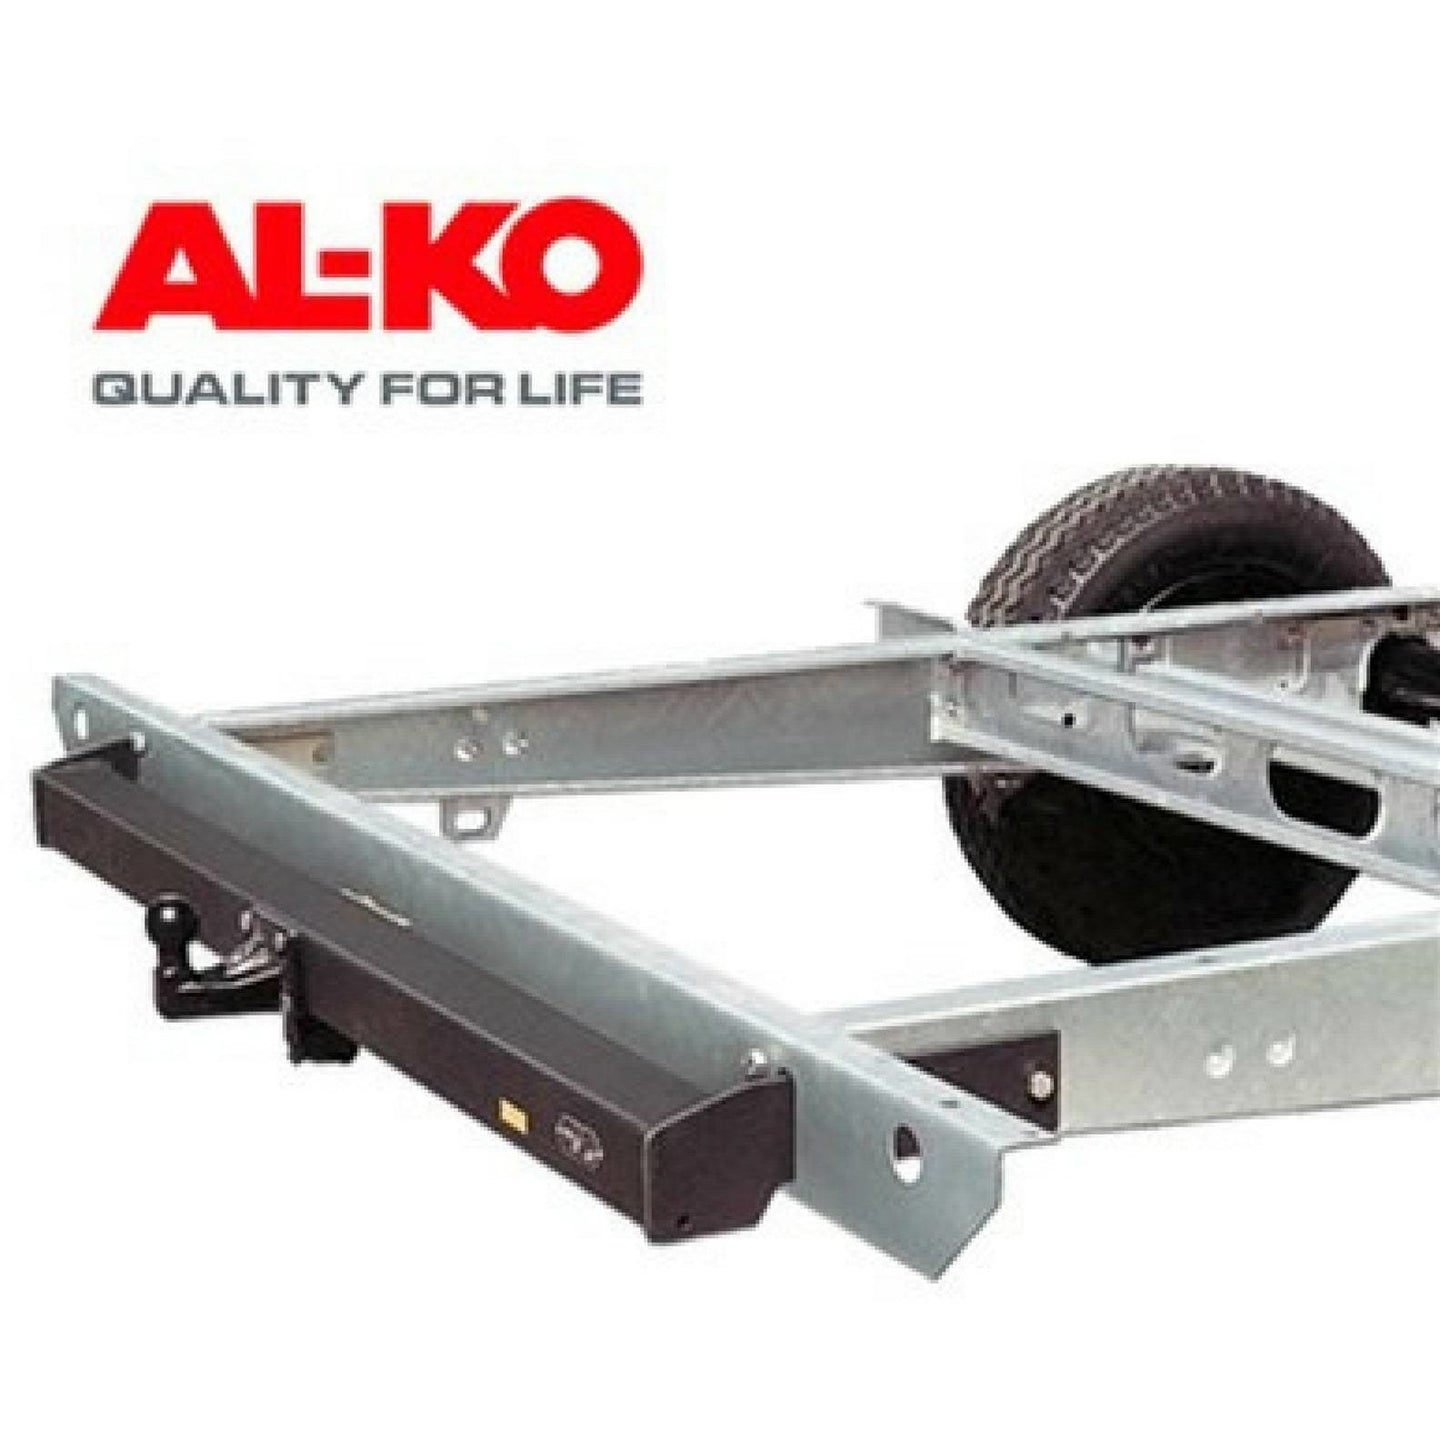 ALKO Towbar Assembly (1202291) - Quality Caravan Awnings